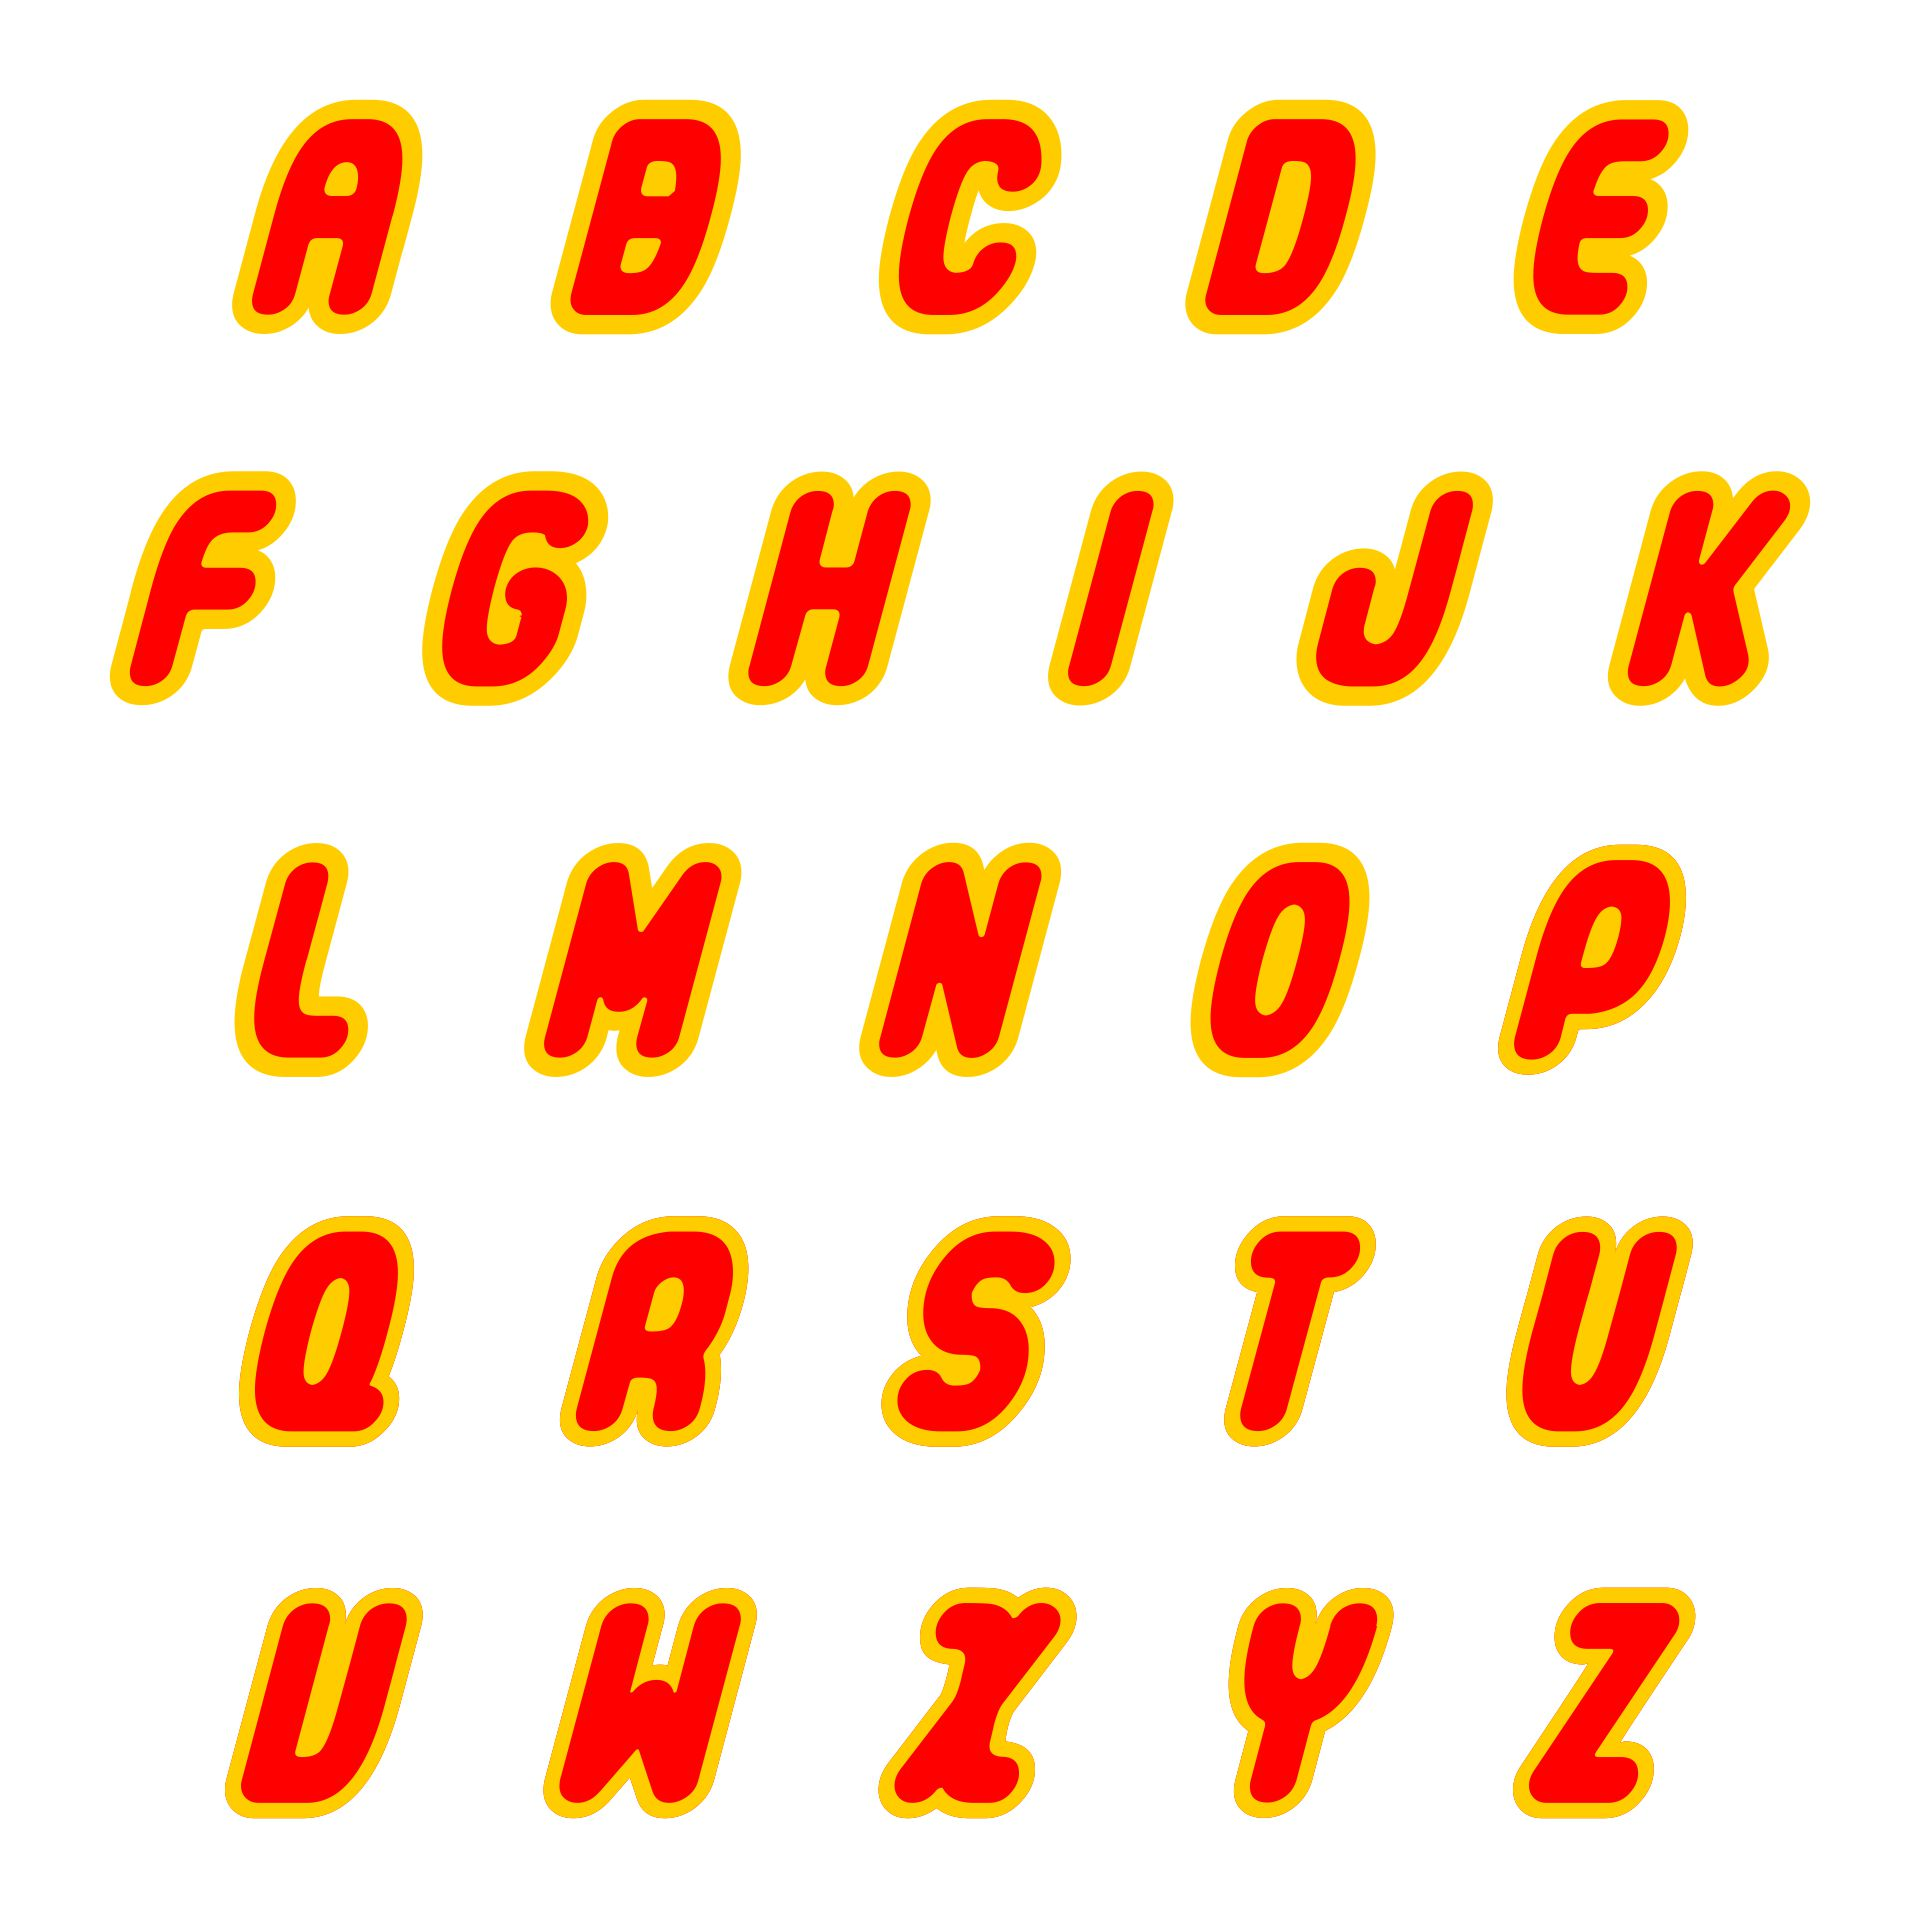 photograph about Lego Letters Printable named √ The 25+ excellent Lego letters suggestions upon Pinterest